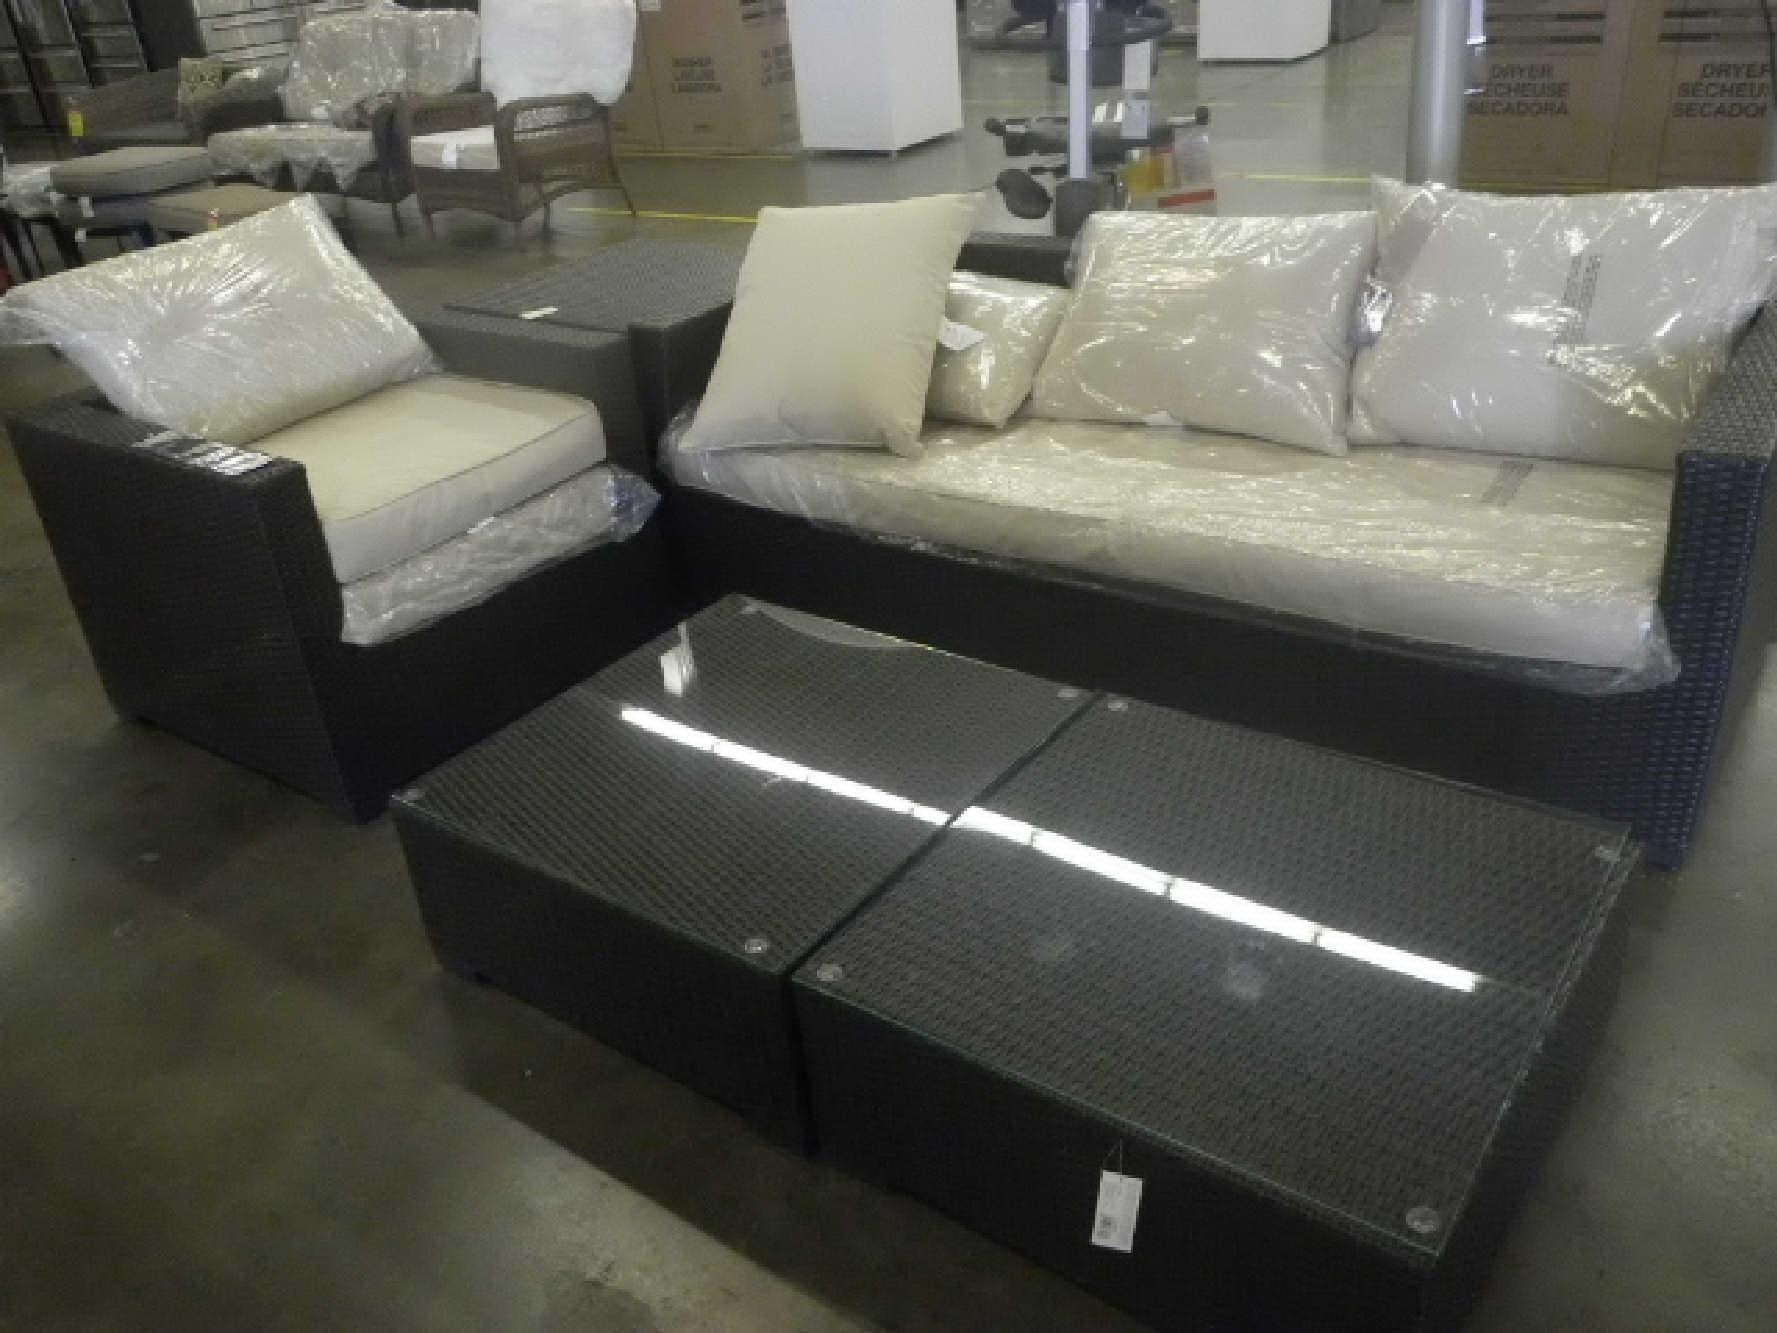 75 Awesome Sears Outlet Sofas Home Design | Hoozoo within Florence Grand Sofas